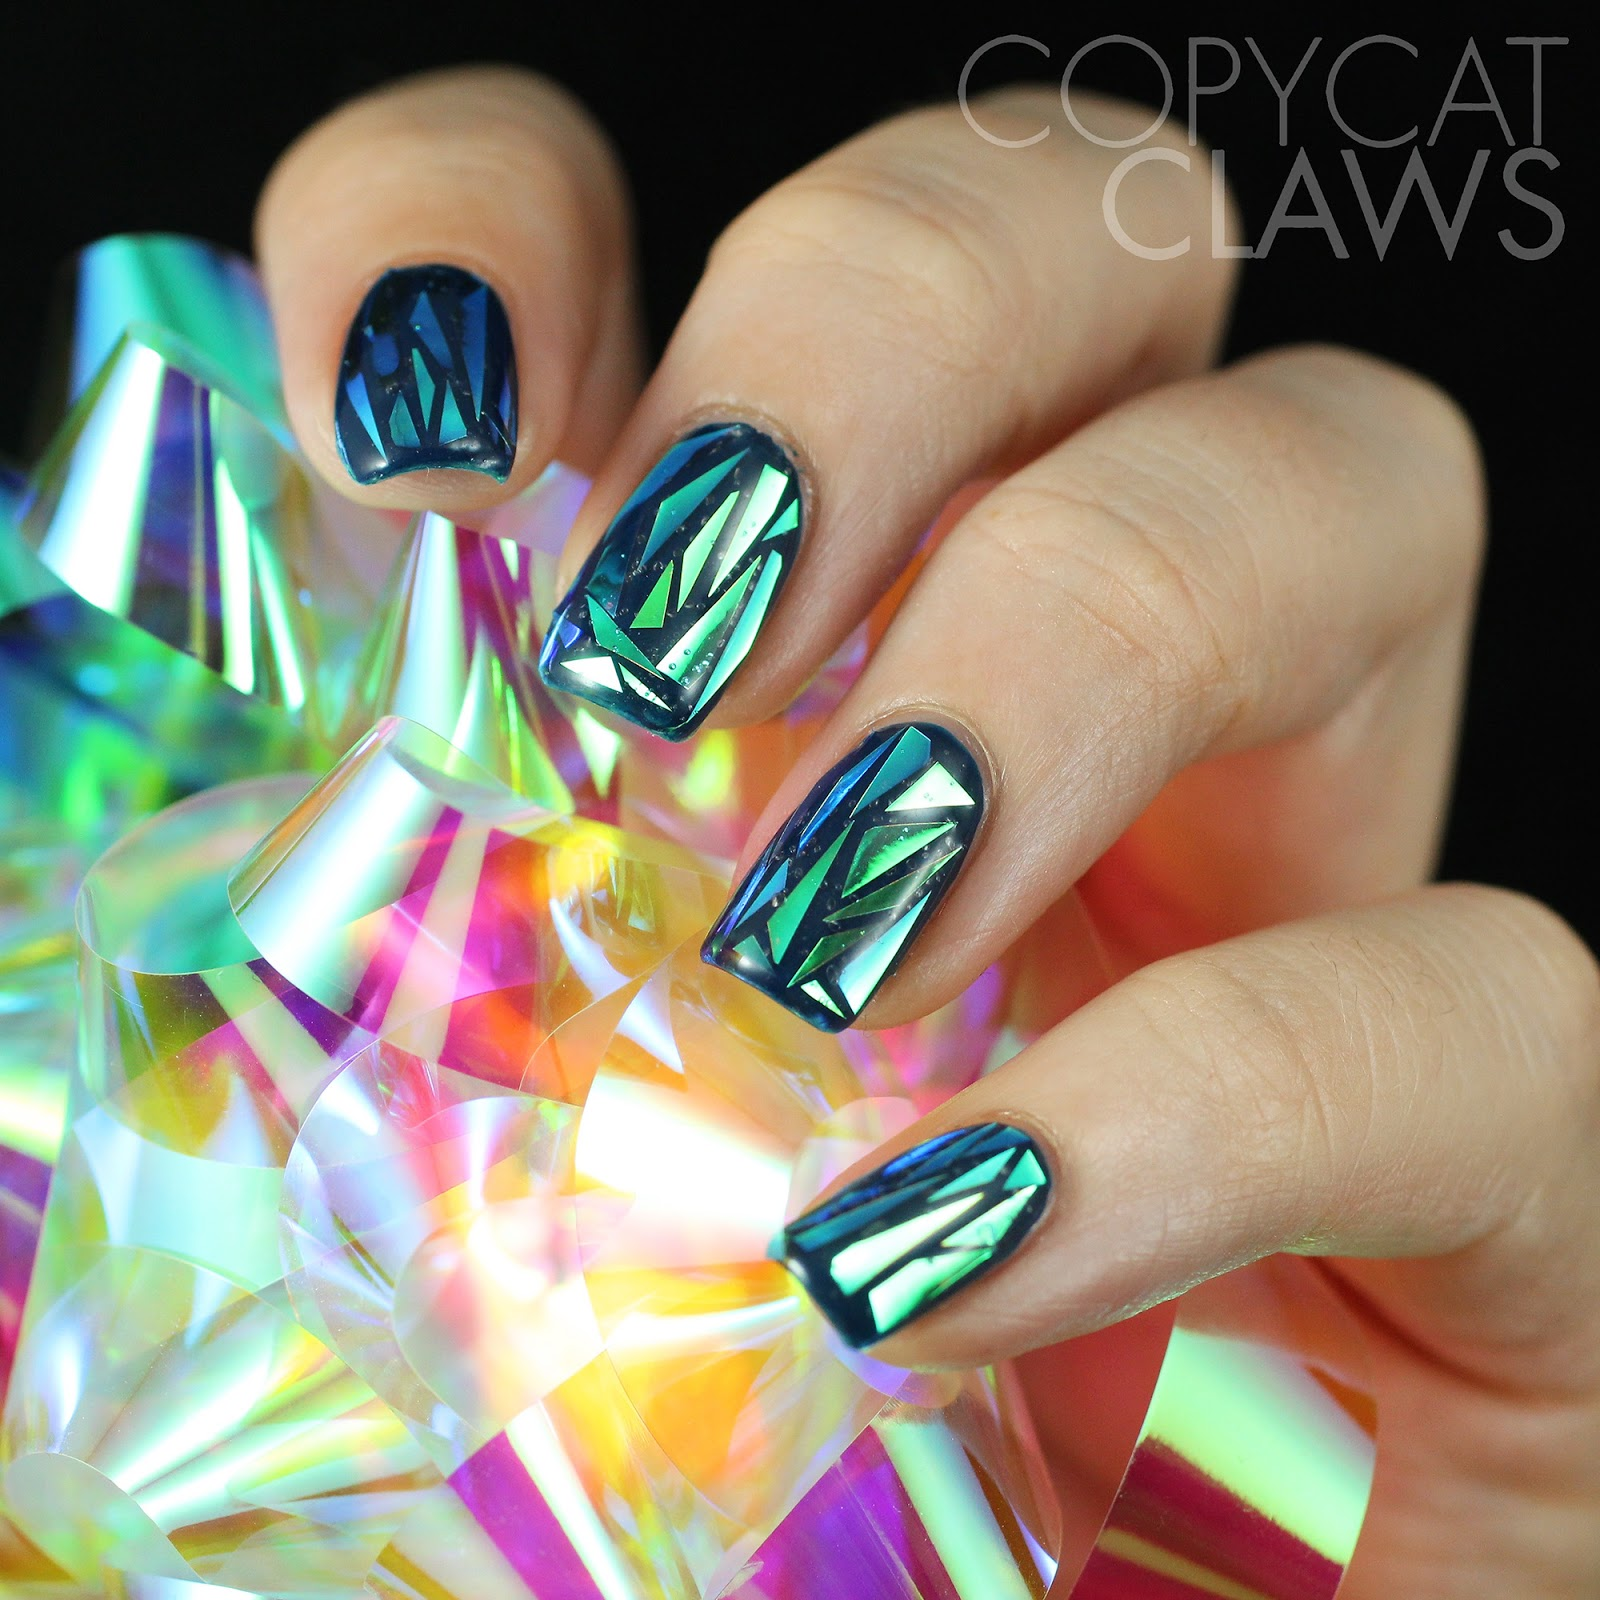 Copycat claws my attempt at shattered glass nails heres a photo of the bow that i used i only ended up using a few centimetres of it i think i could do this nail art a thousand more times and prinsesfo Choice Image